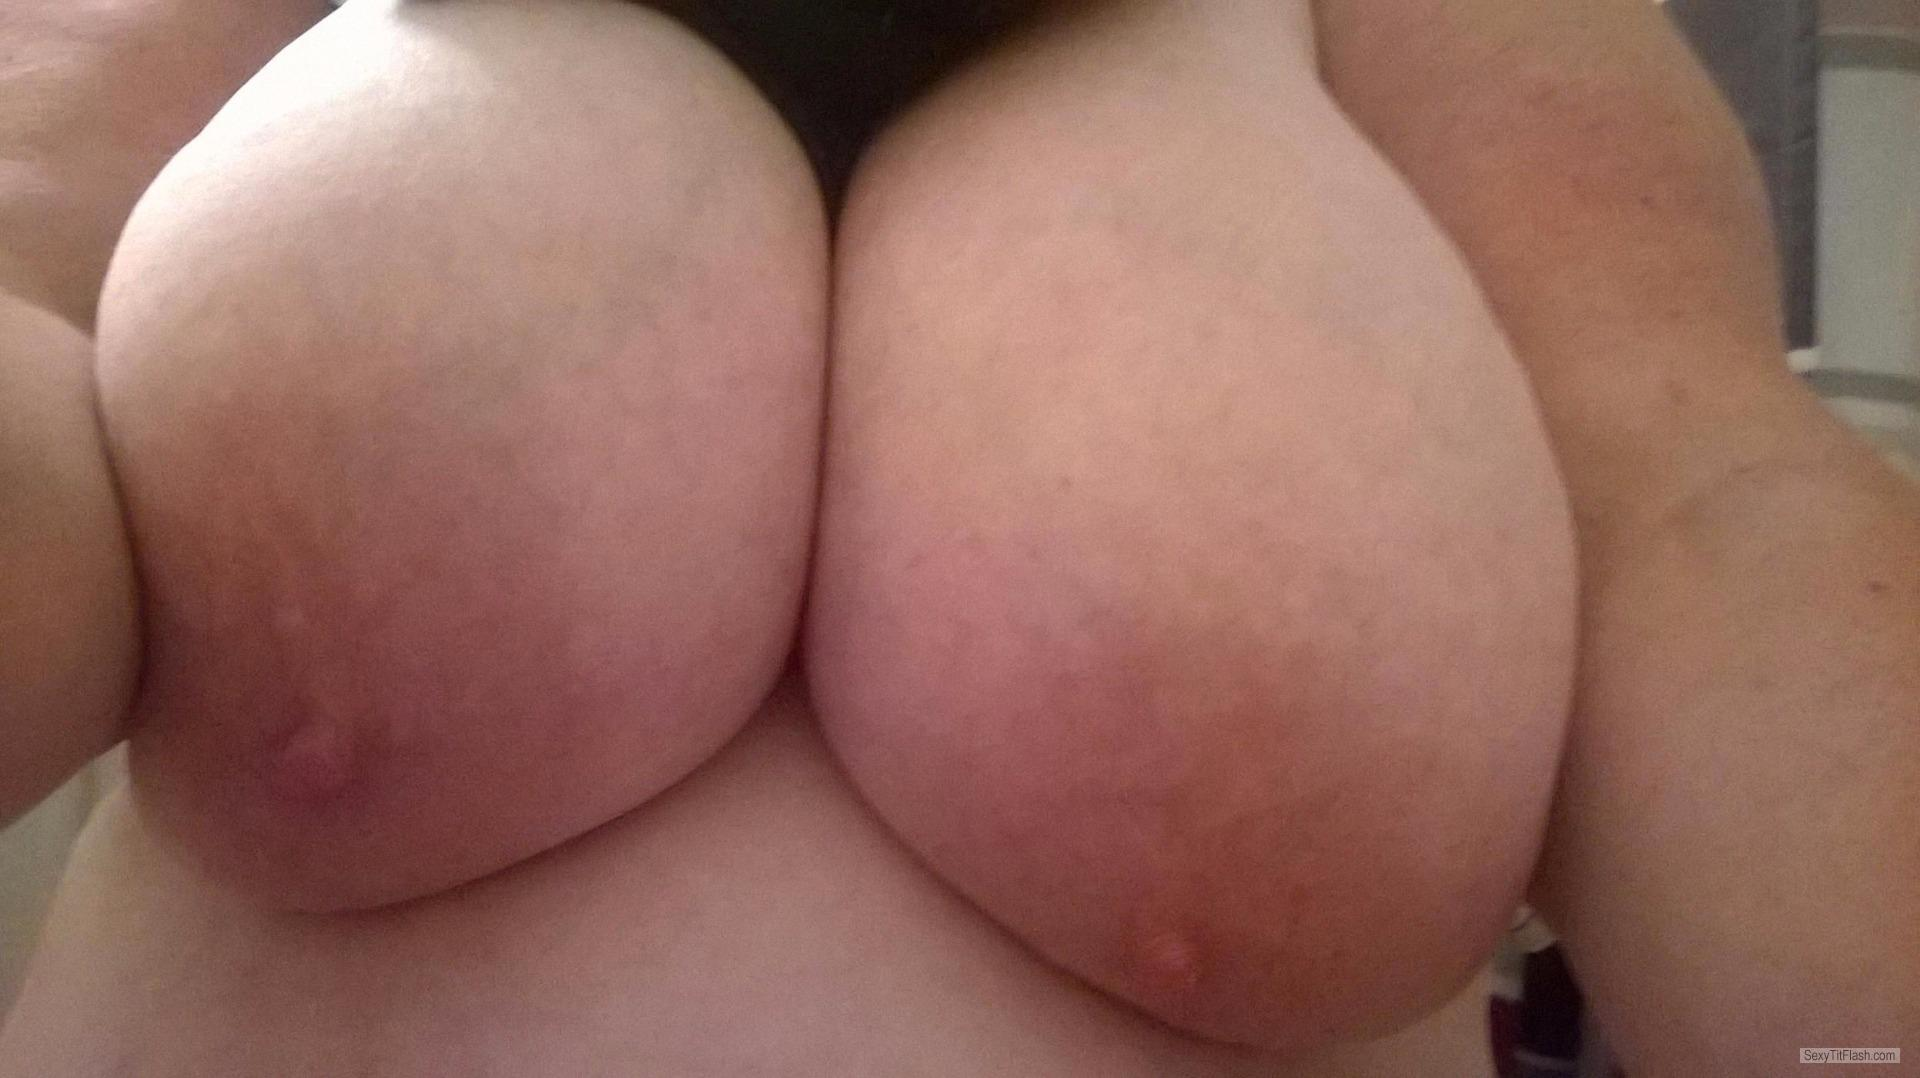 Tit Flash: Girlfriend's Extremely Big Tits - My Gfs Big 46 Ddd from United States